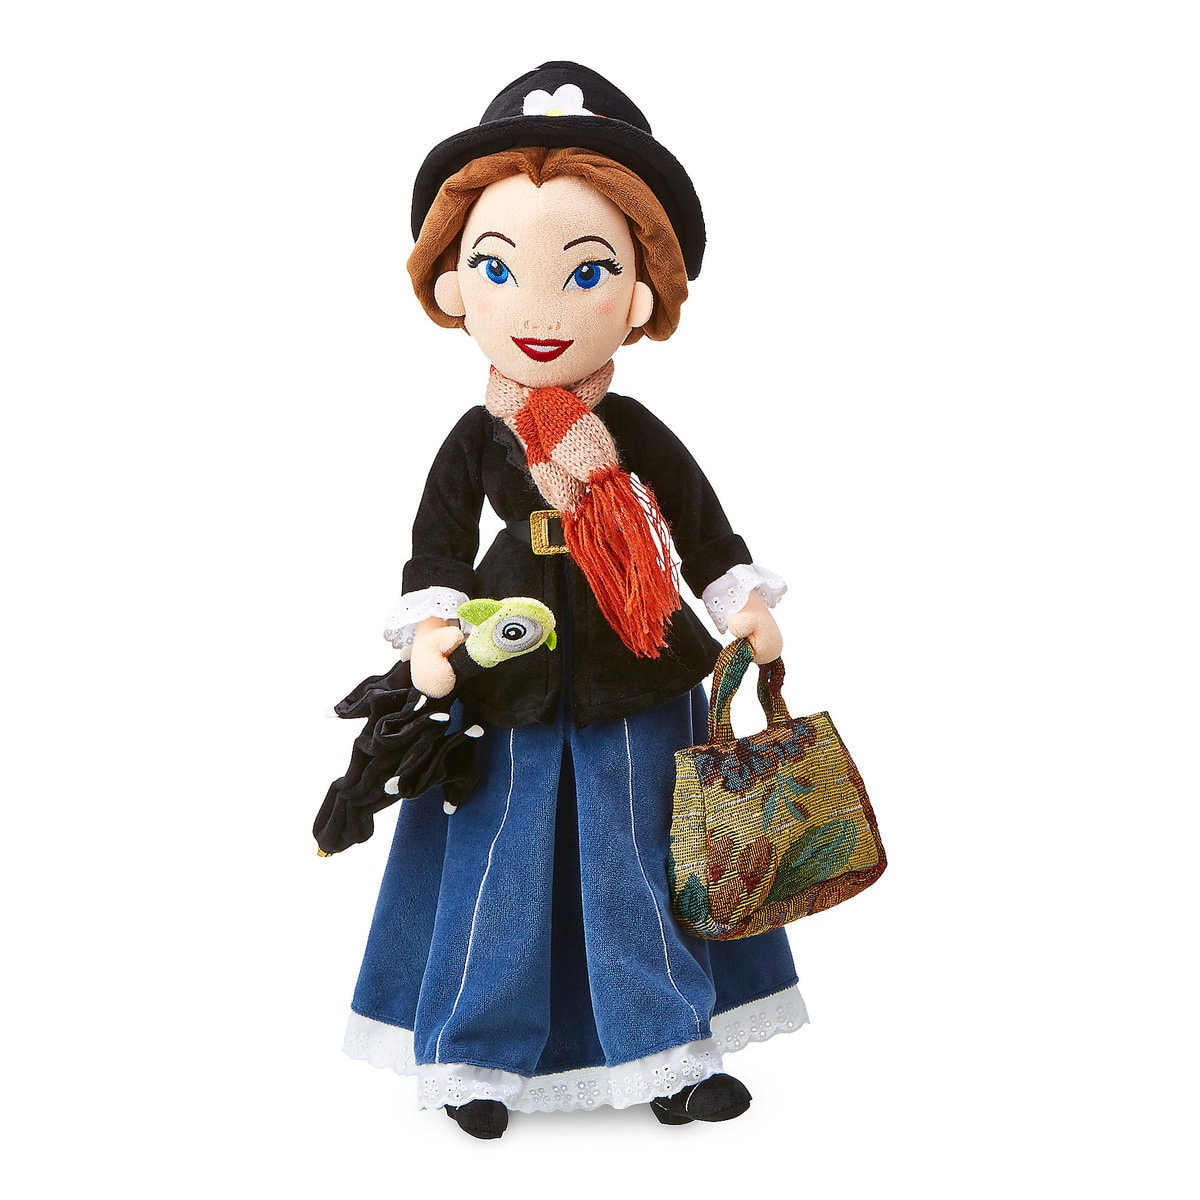 Mary Poppins Returns Merchandise Out Now Diskingdom